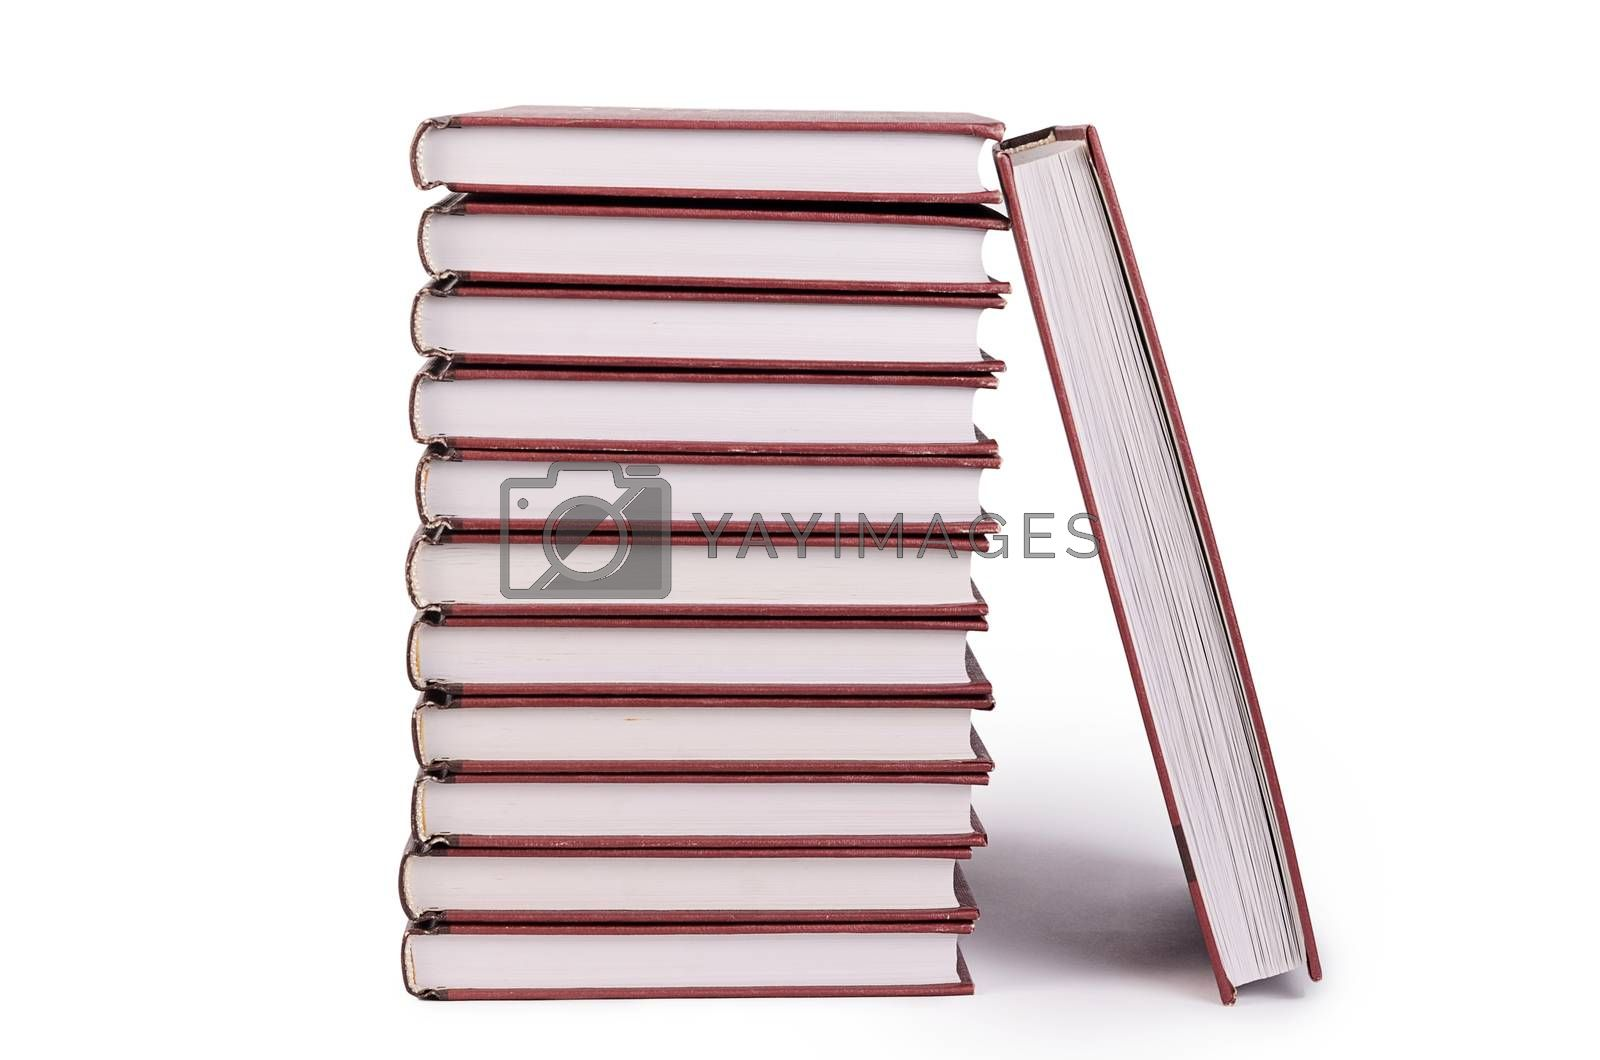 Royalty free image of Pile of books isolated on white by SvetaVo